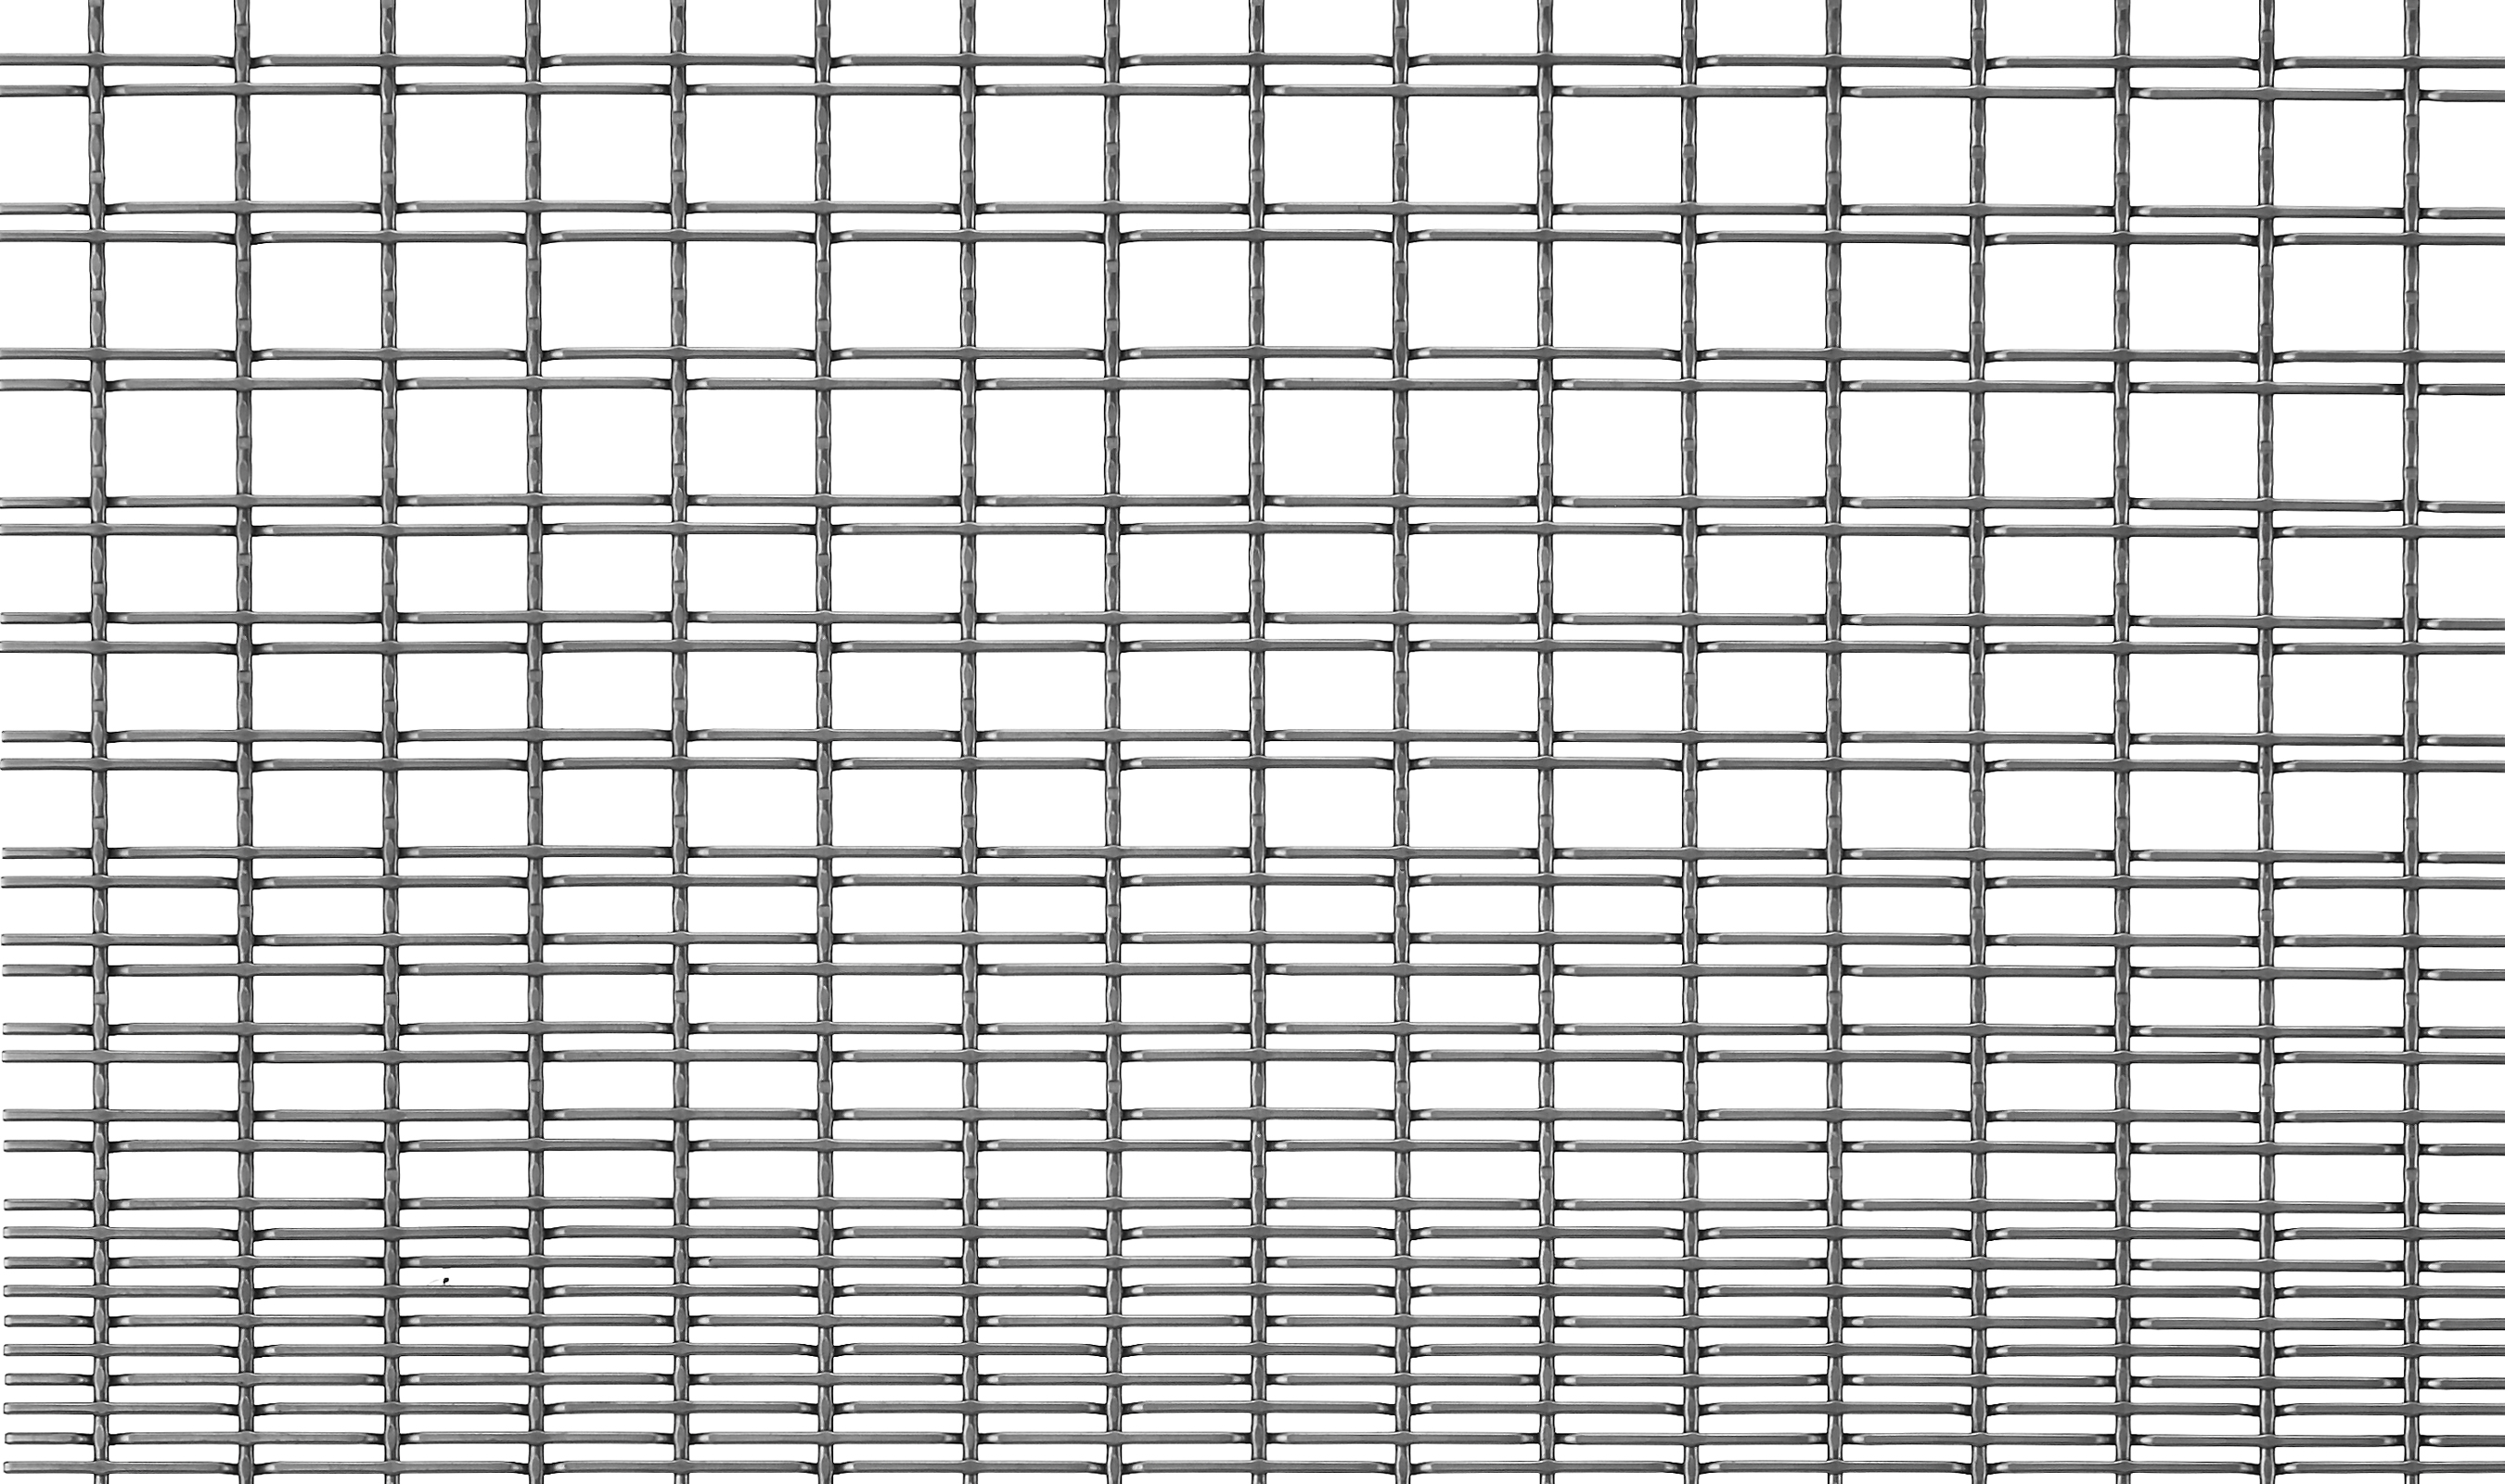 PFV-152 Woven Wire Mesh Pattern